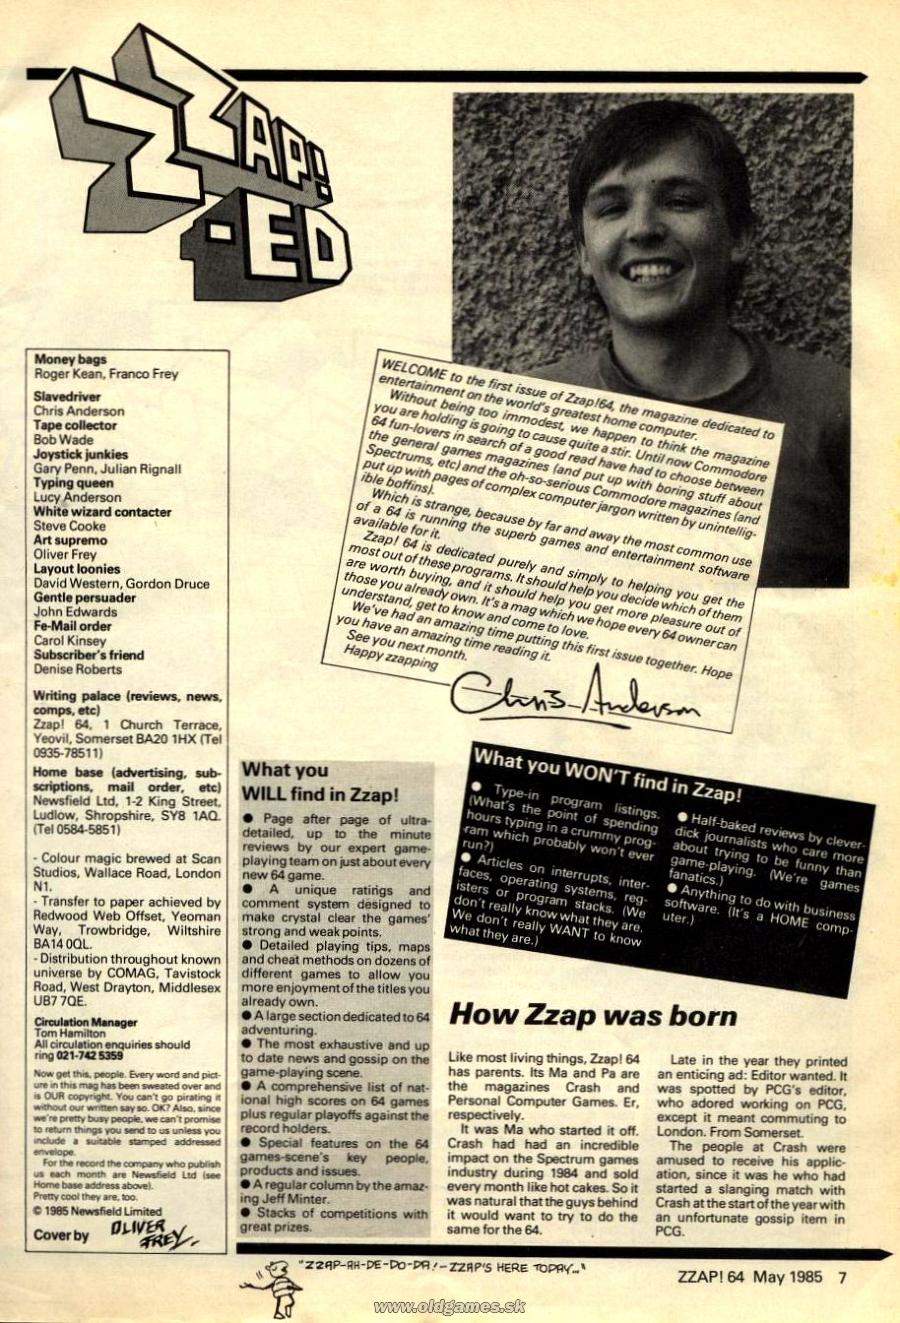 Zzap ED, Welcome